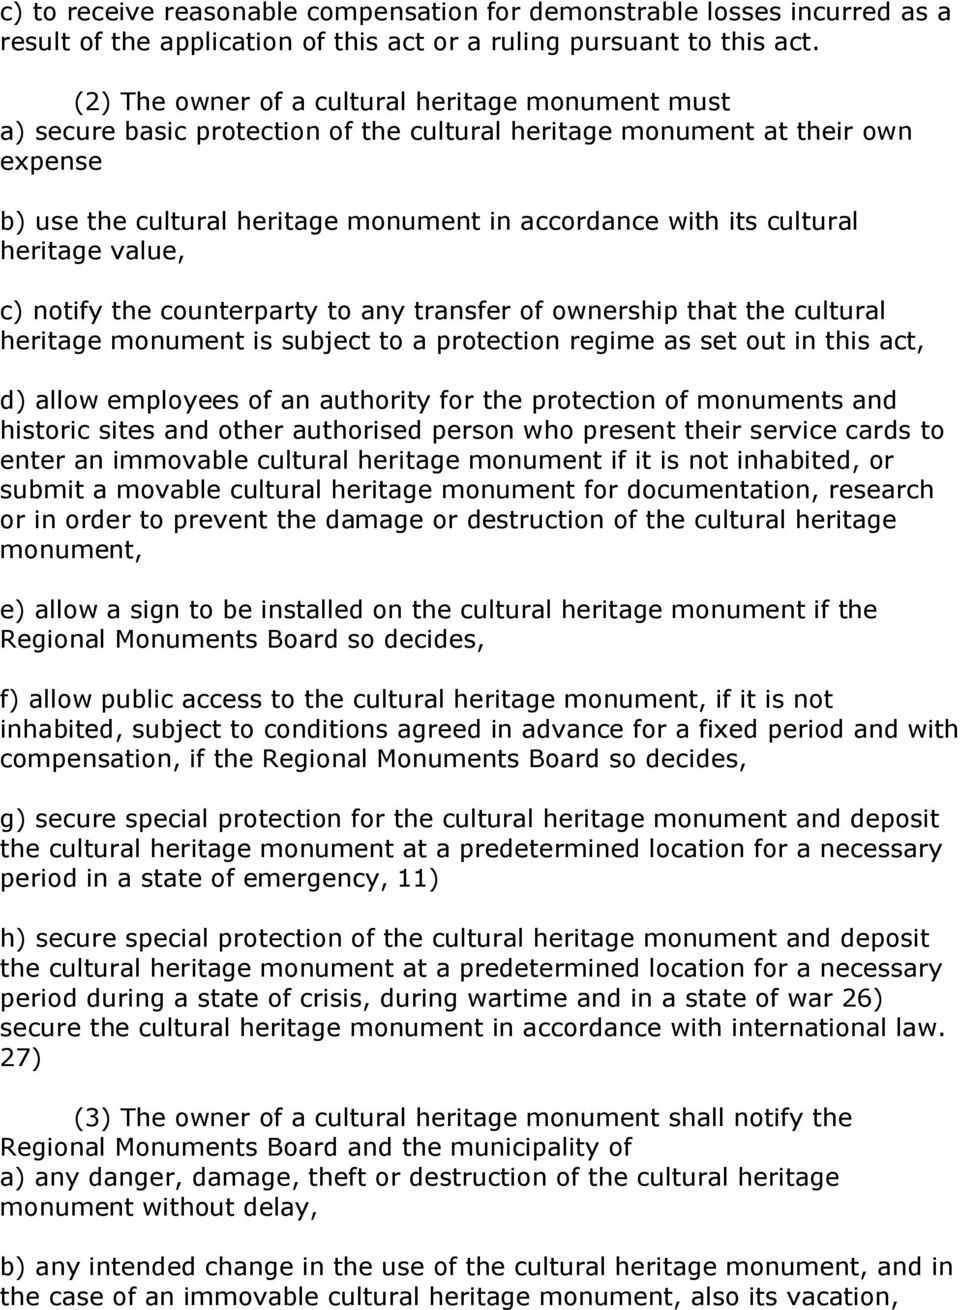 cultural heritage value, c) notify the counterparty to any transfer of ownership that the cultural heritage monument is subject to a protection regime as set out in this act, d) allow employees of an